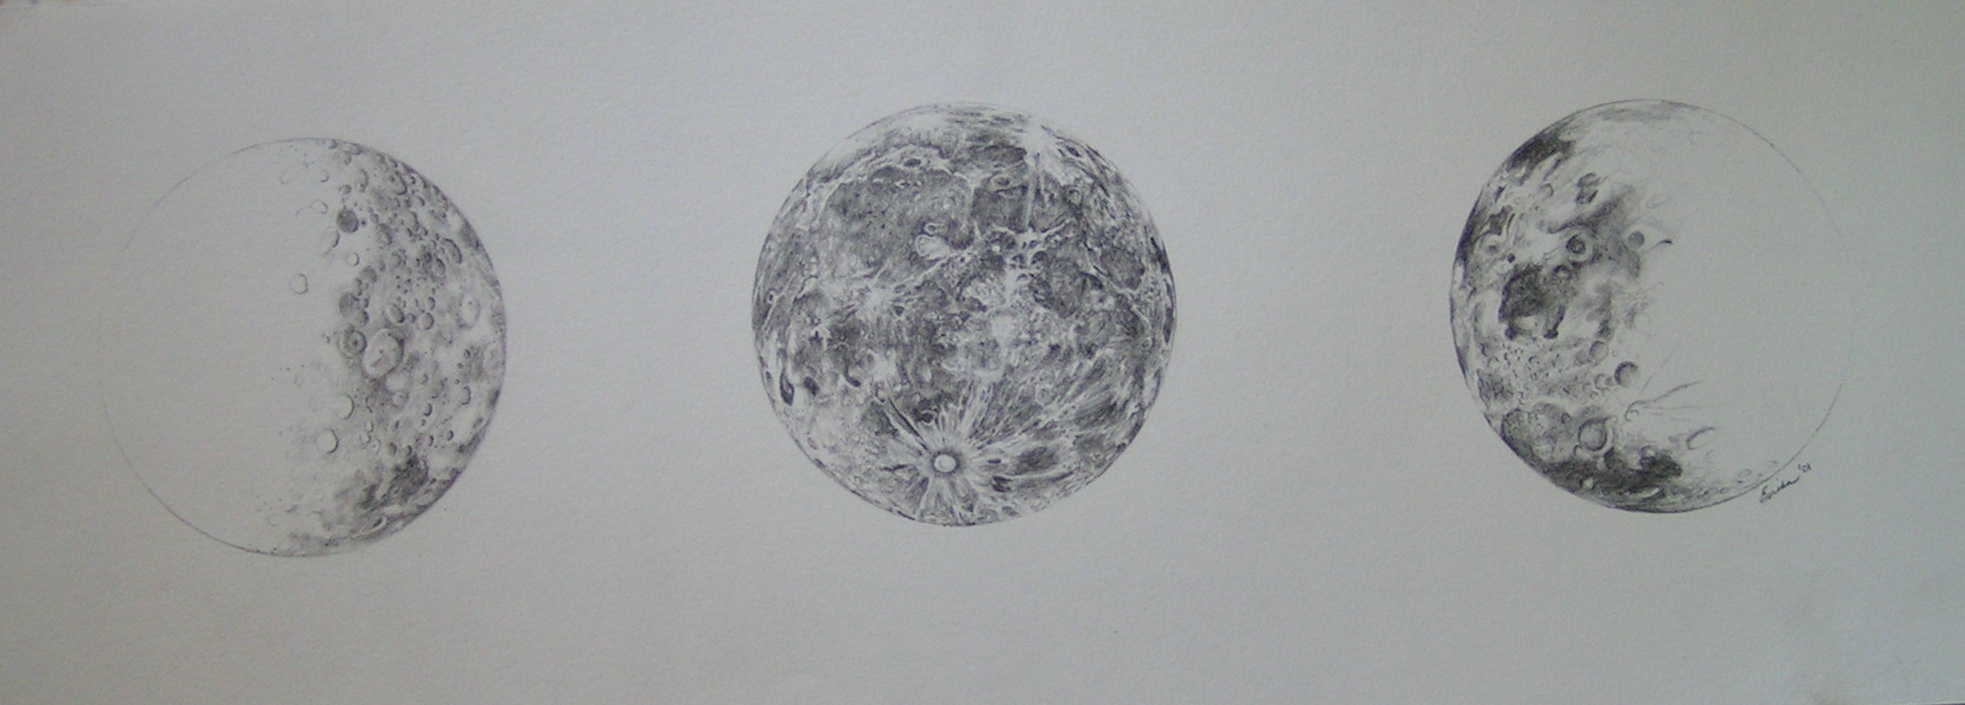 """Phases Of The Moon"""" Astronomy Sketch Of The Day - 1965x705 - jpeg"""